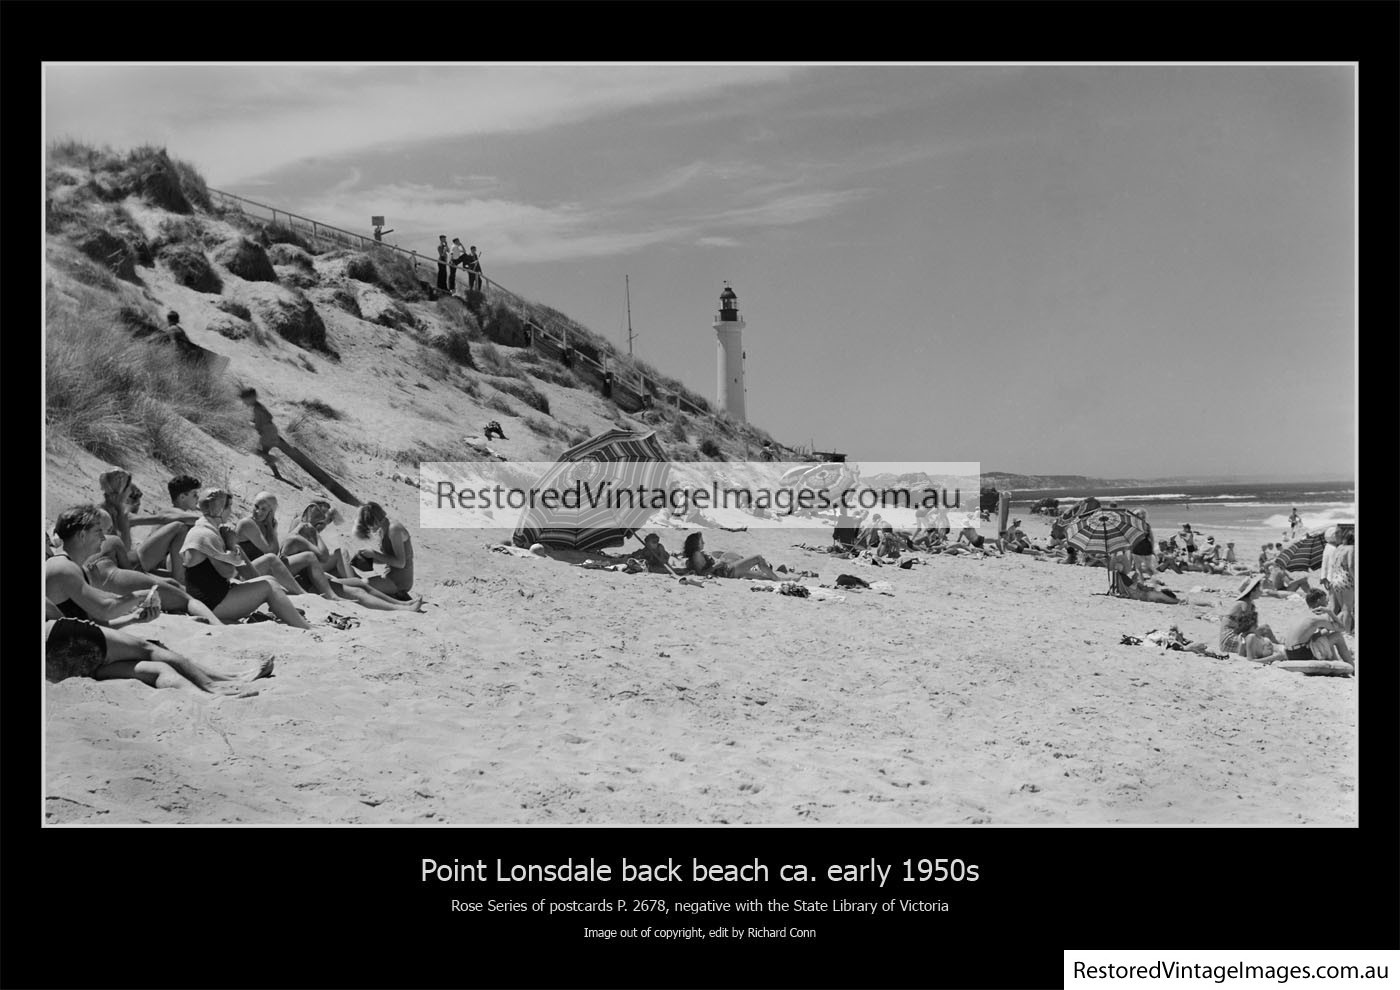 Point Lonsdale Back Beach Early 1950s